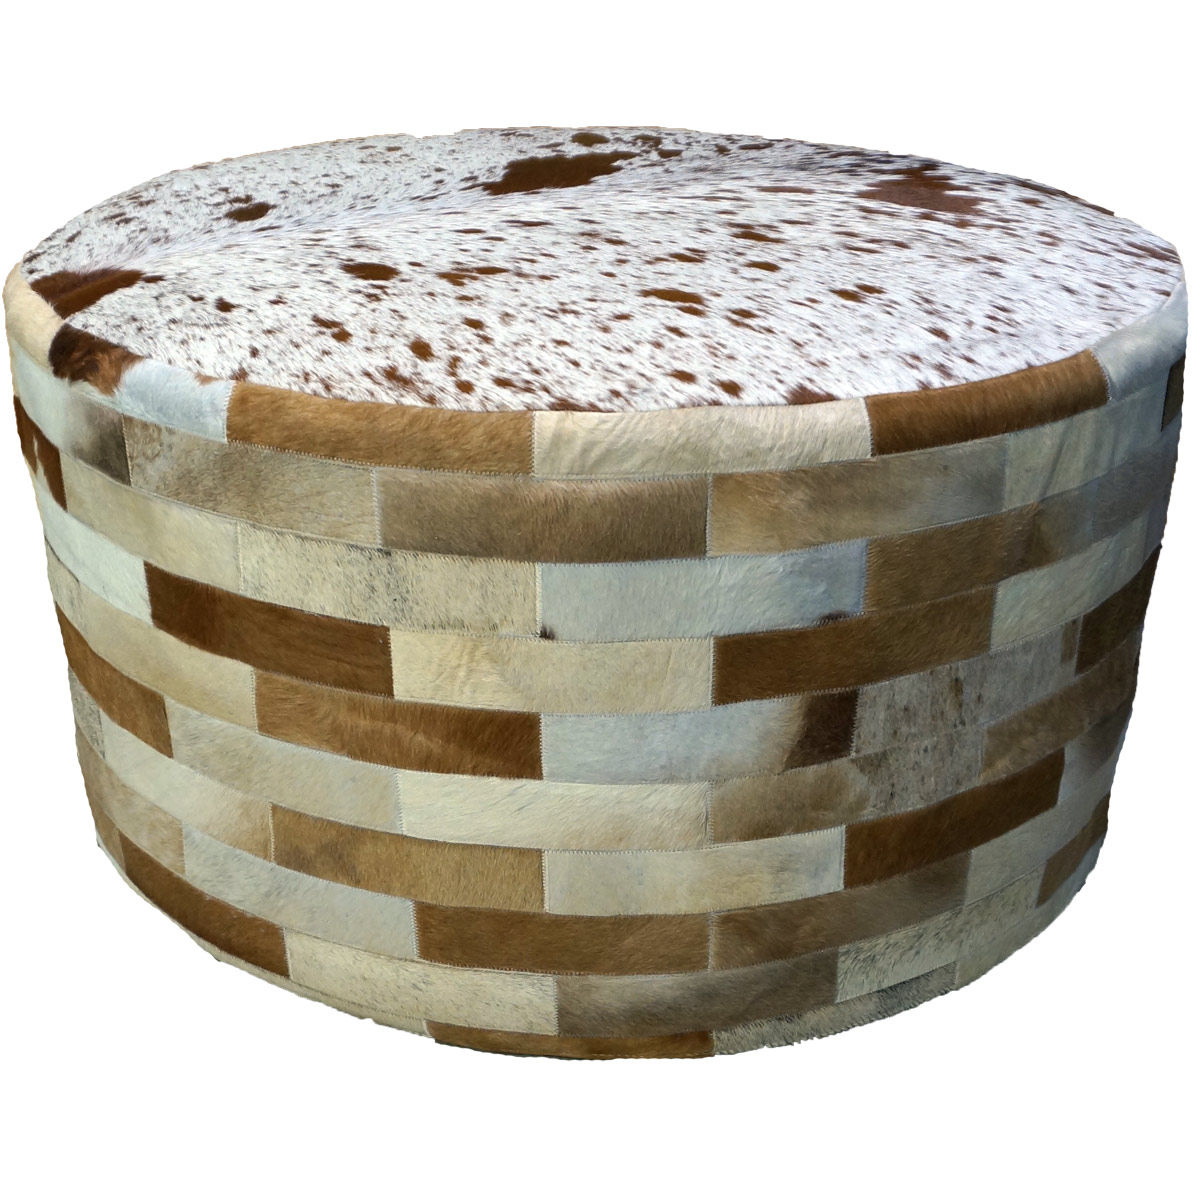 Light Brown Round Cowhide Ottoman - 36 Inch